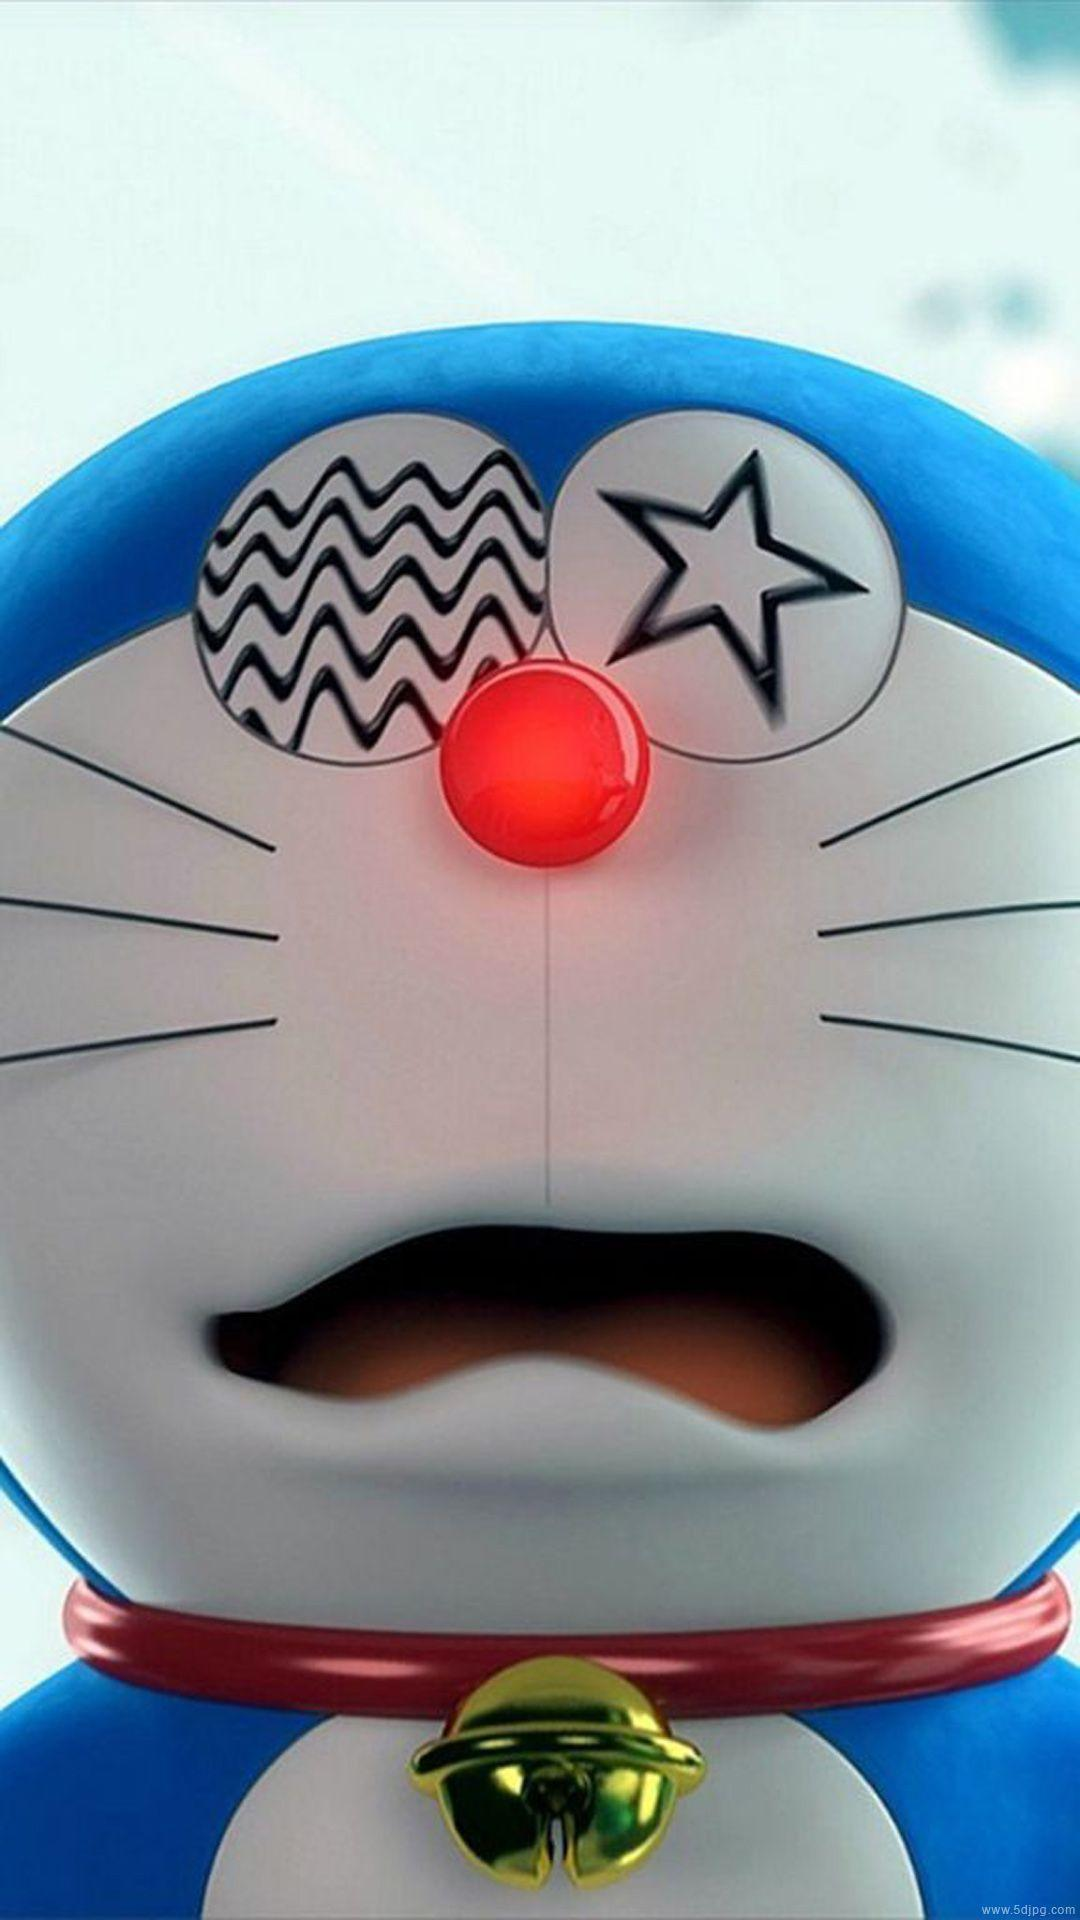 Wallpapers Doraemon Di Android Wallpaper Cave